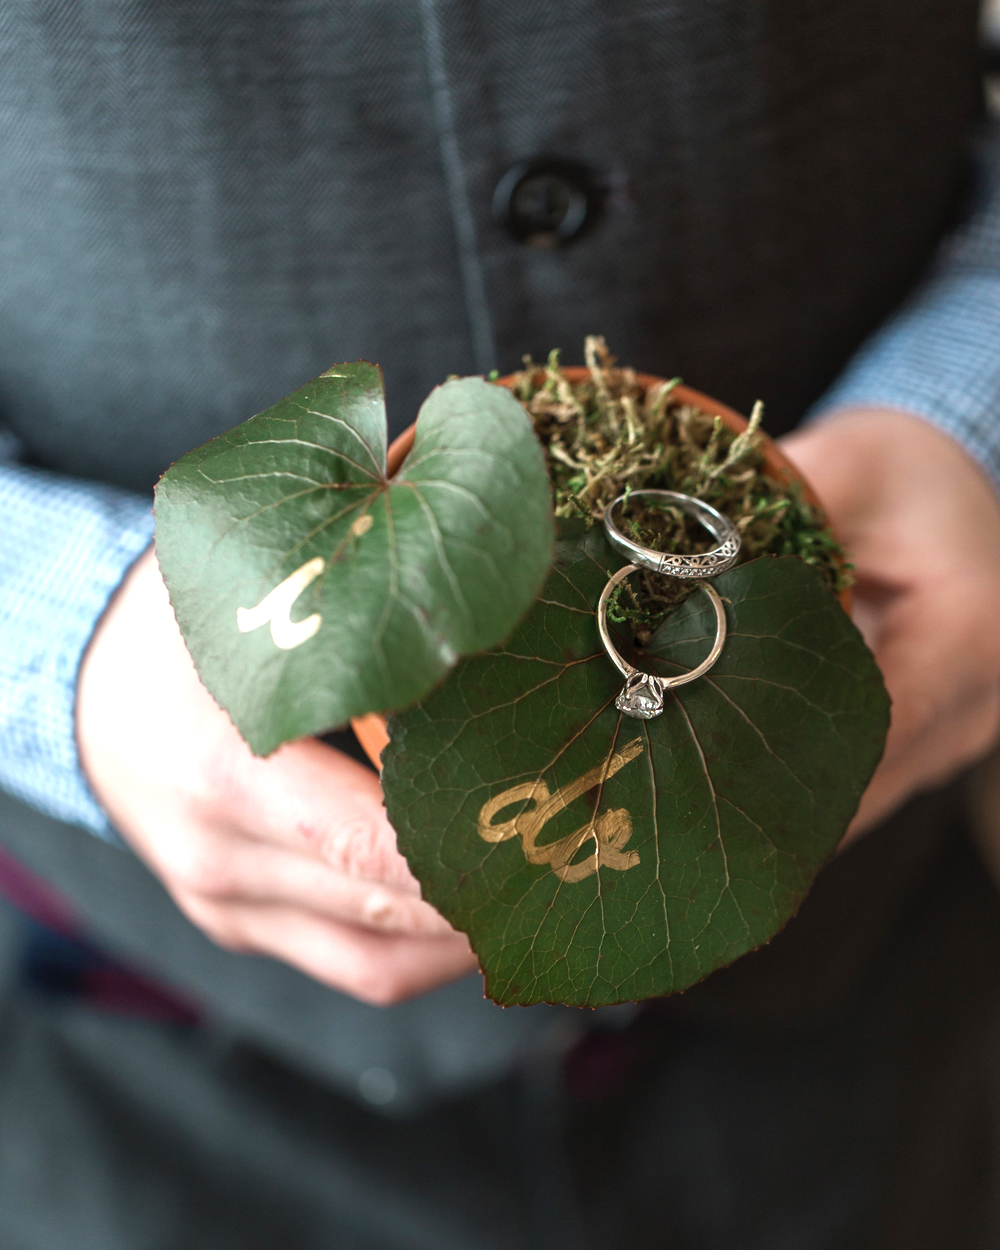 wedding rings on leafing plant